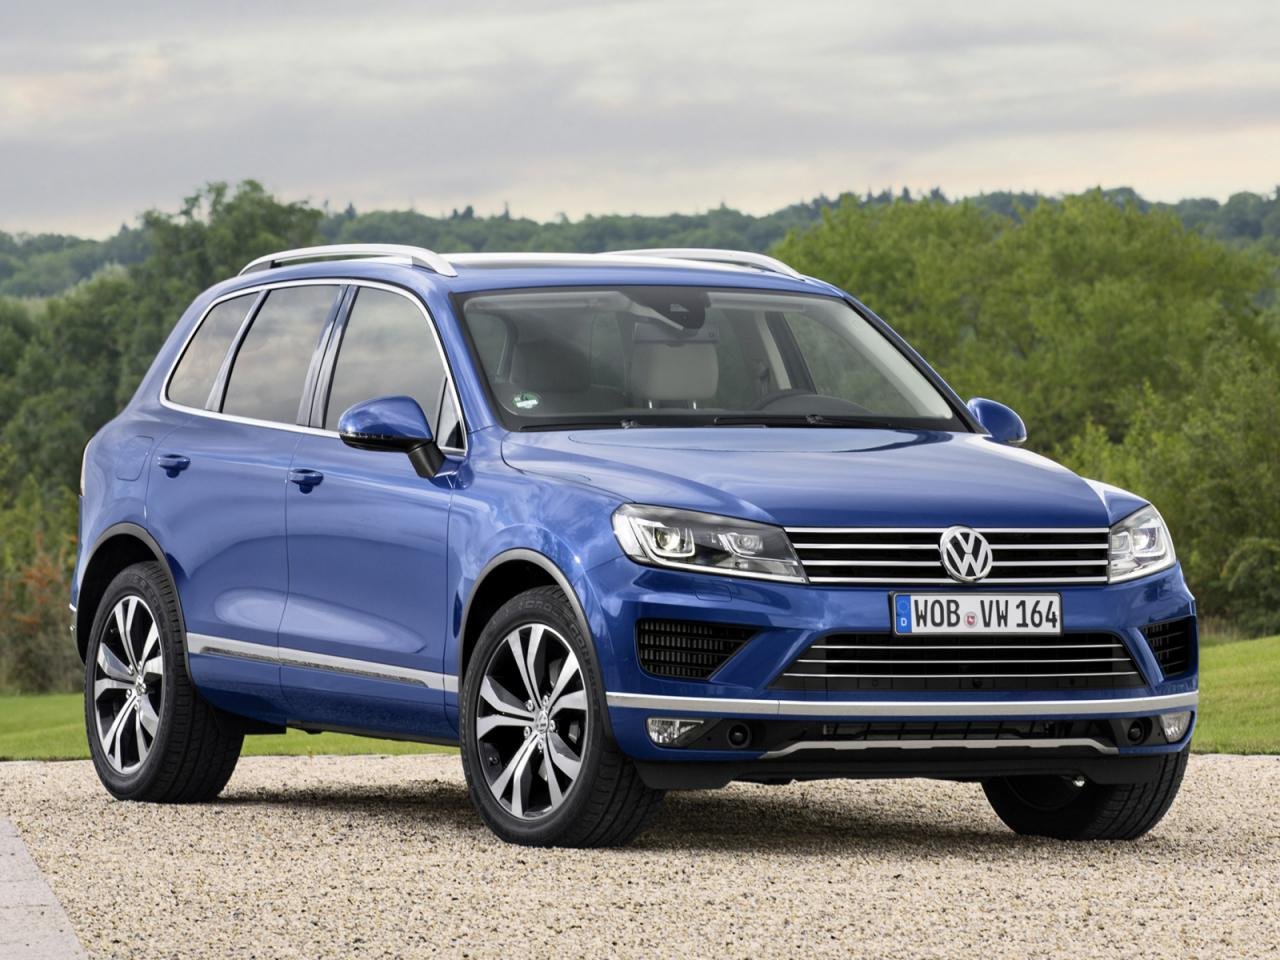 2015 volkswagen touareg v6 tdi gets mild power boost performancedrive. Black Bedroom Furniture Sets. Home Design Ideas